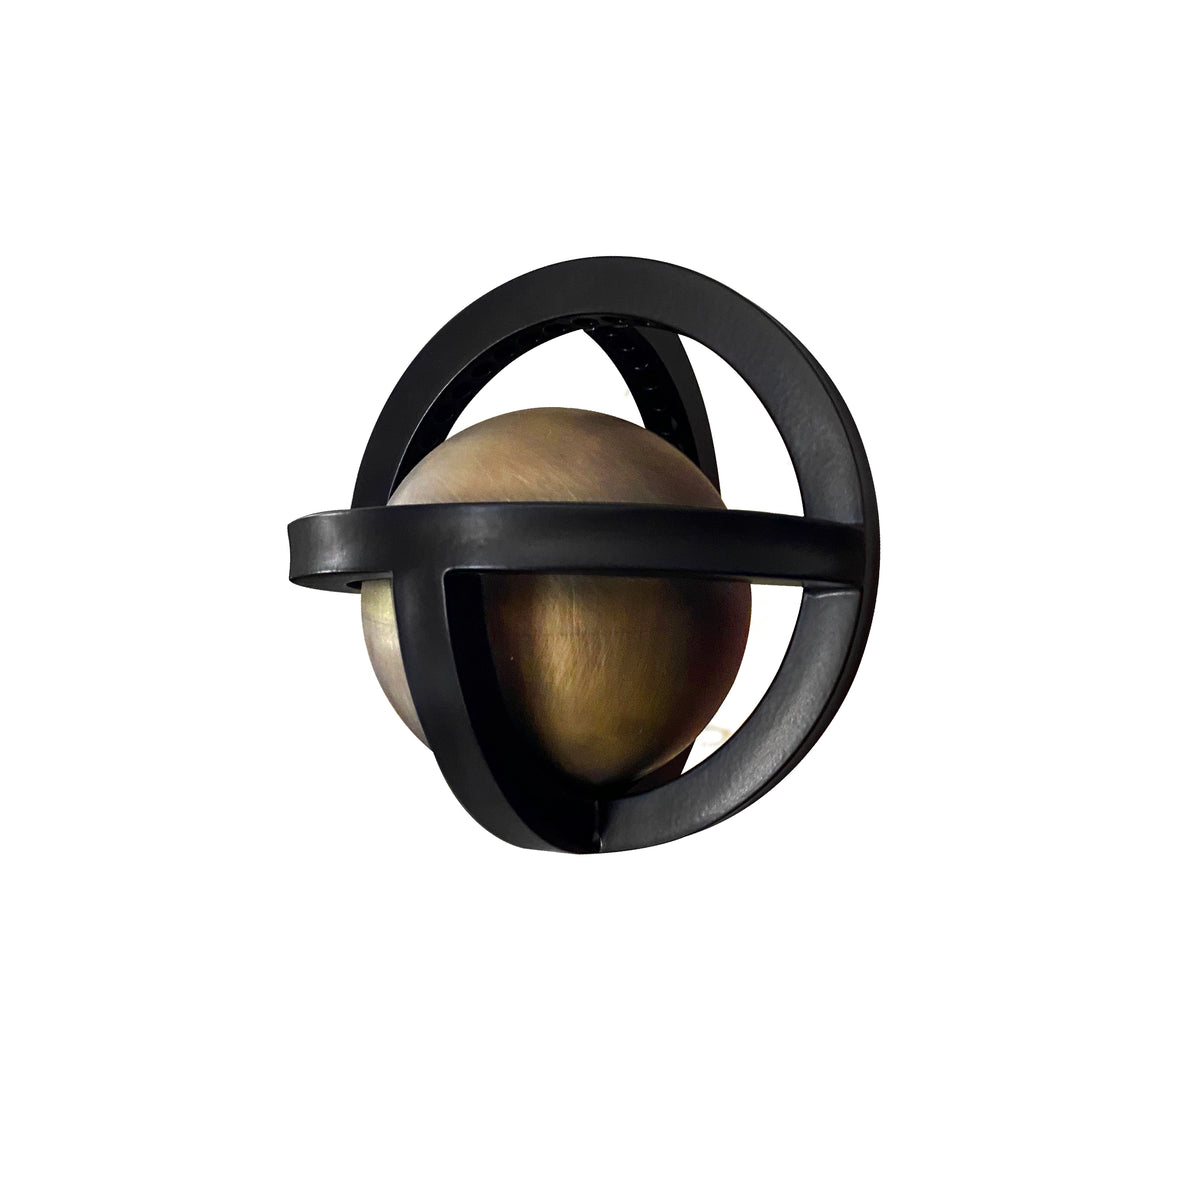 PLANETARIA WALL LIGHT - BLACK